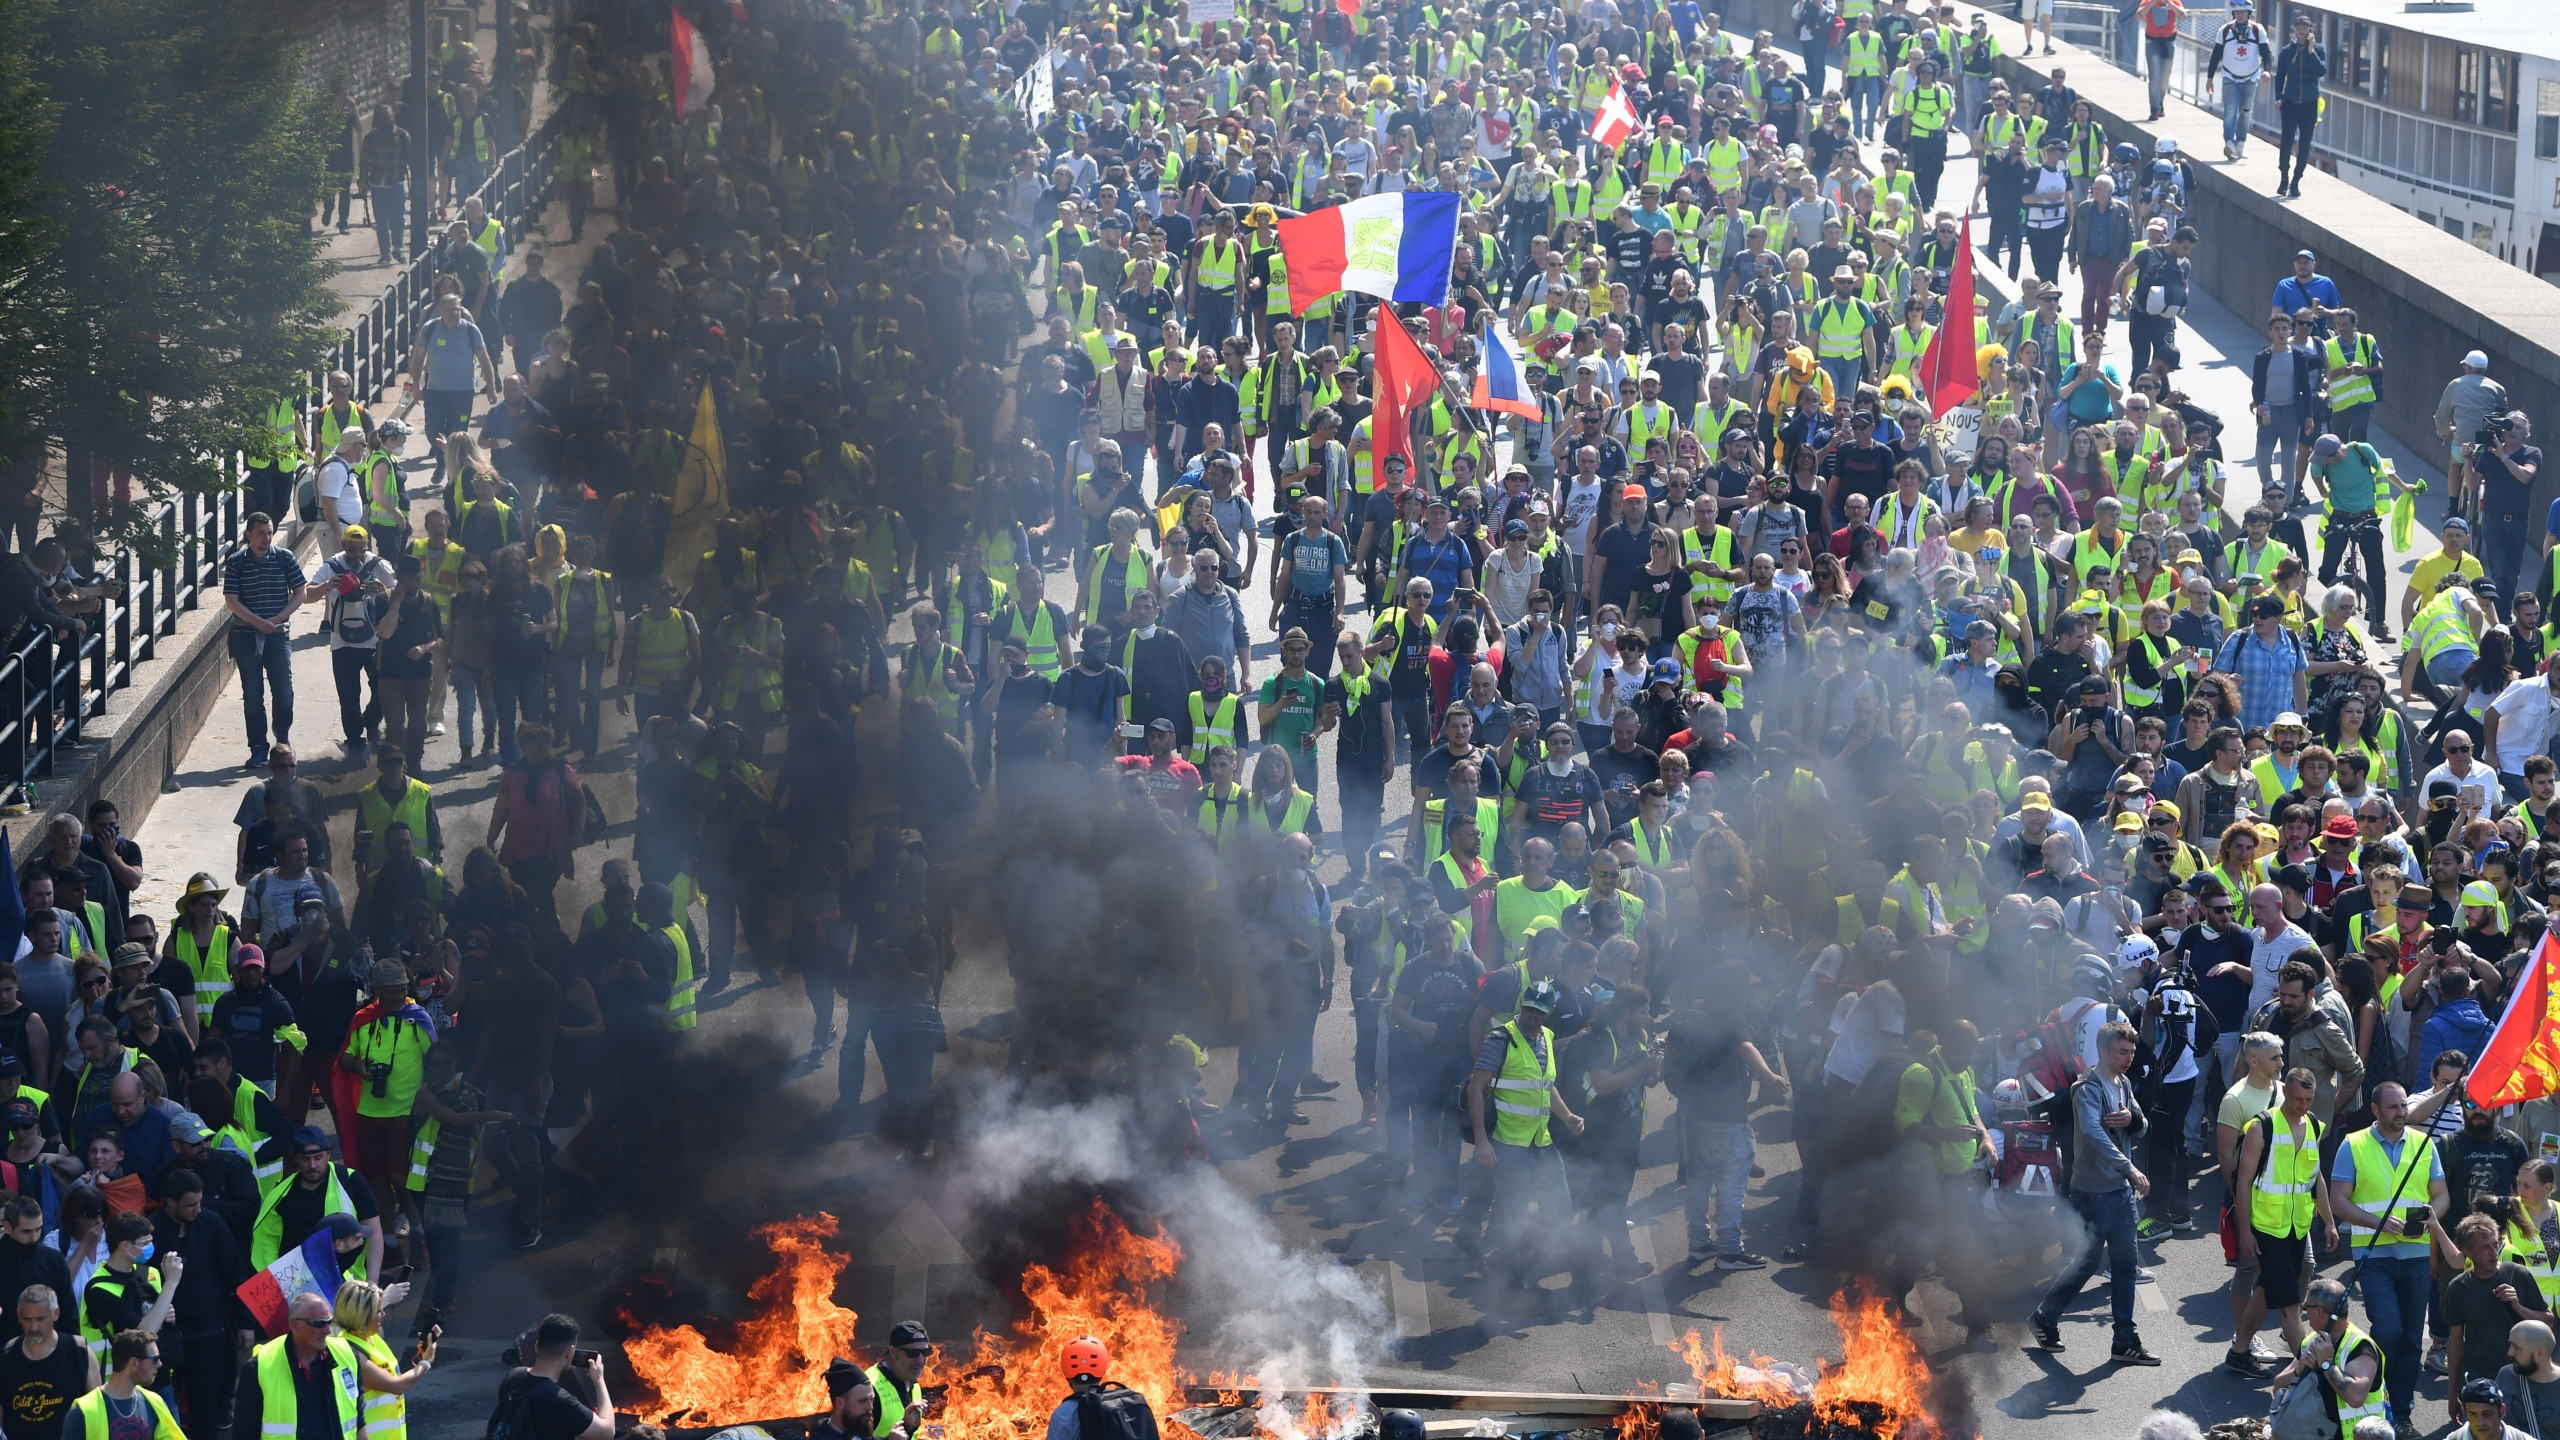 Yellow vest demonstrators light a fire as they gather in the Bercy neighborhood to protest for a 23rd week on April 20, 2019 in Paris, France. (Credit: Jeff J Mitchell/Getty Images)